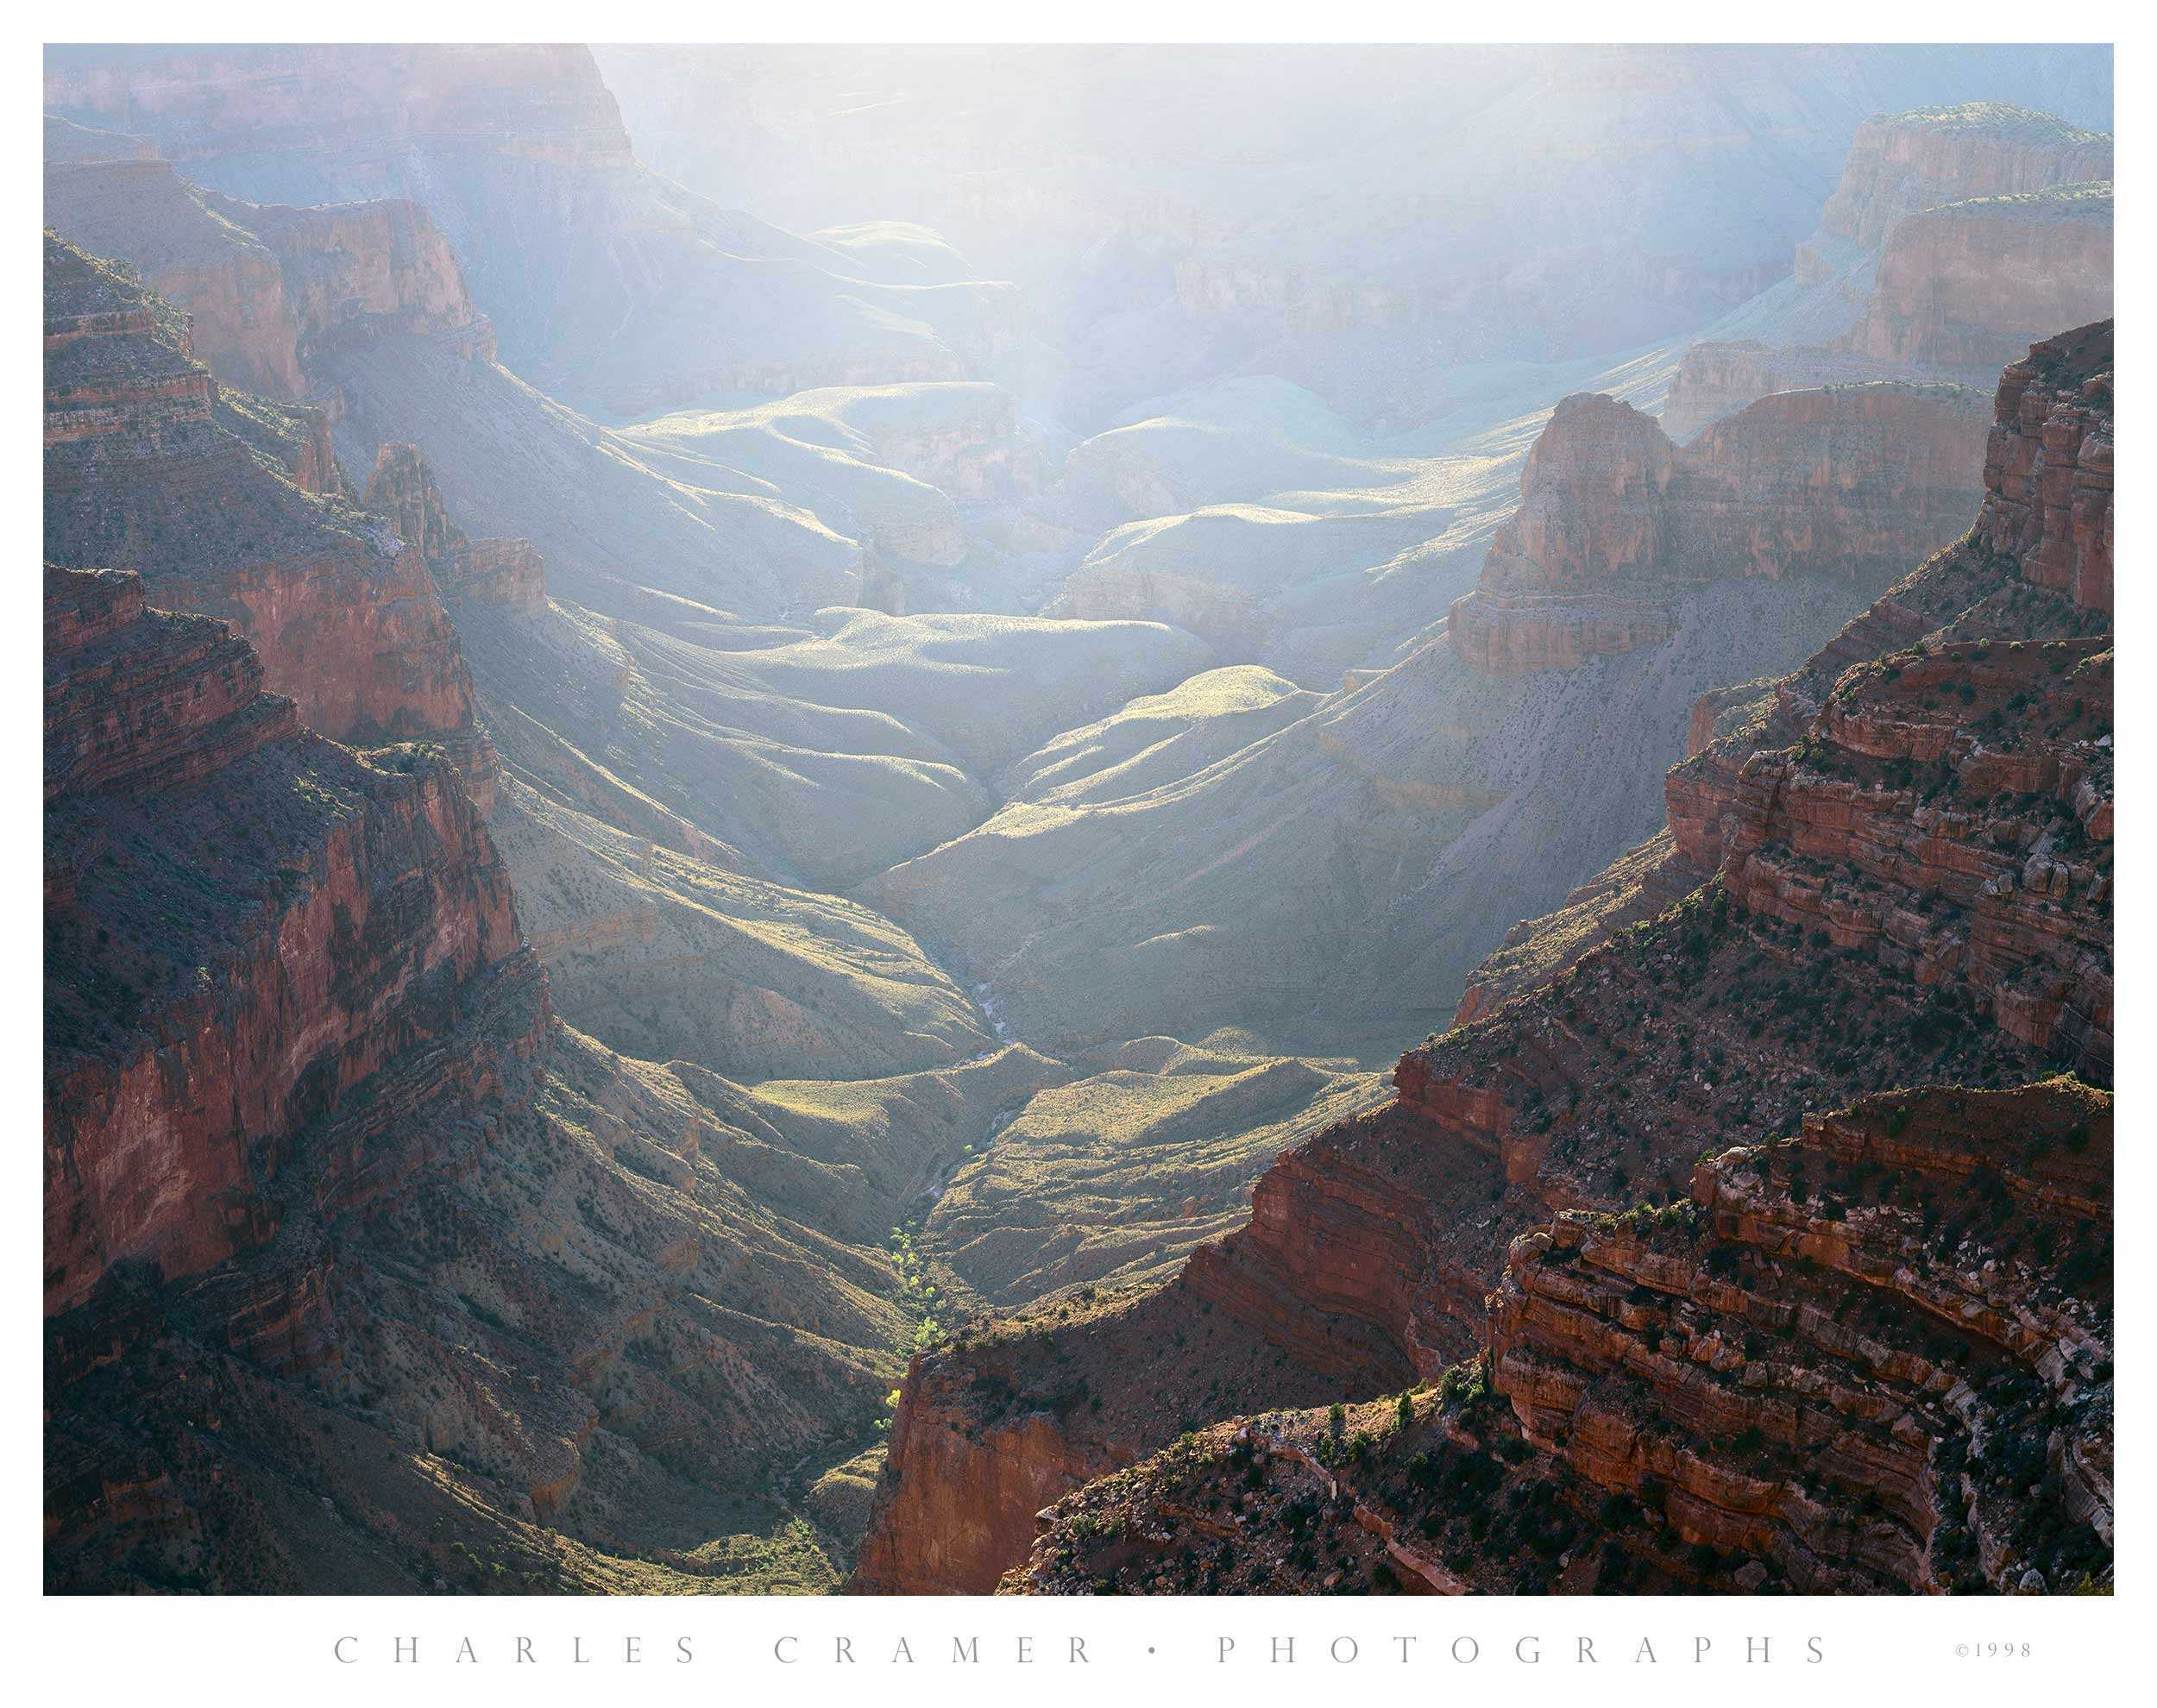 Late Afternoon Light, Cape Royal, Grand Canyon